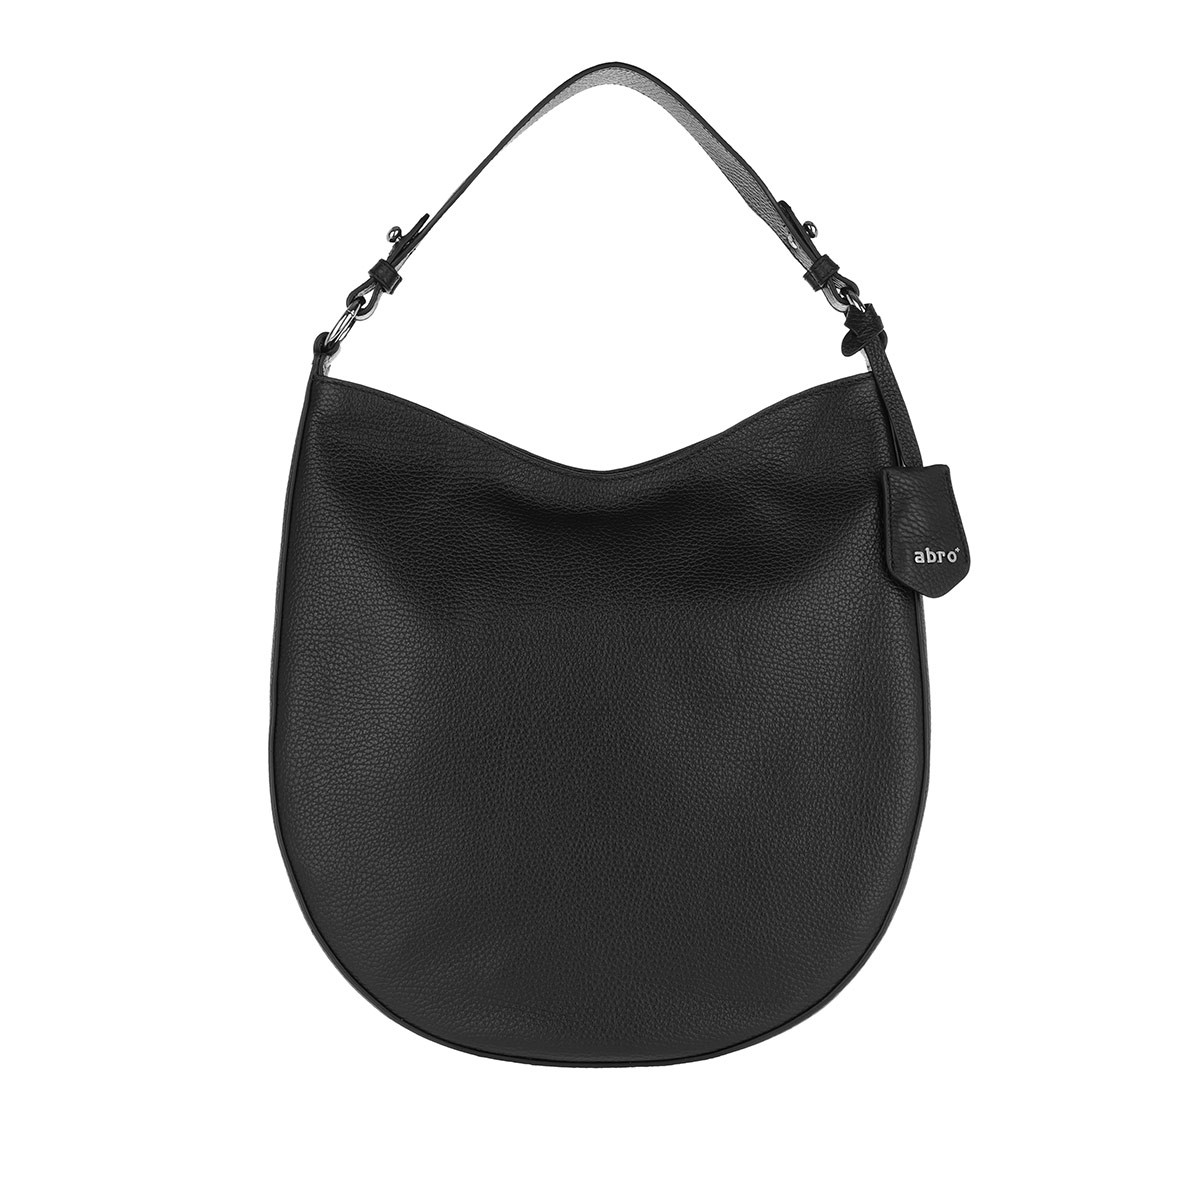 Abro Hobo Bag - Beutel Ay Black Nickel - in schwarz - für Damen